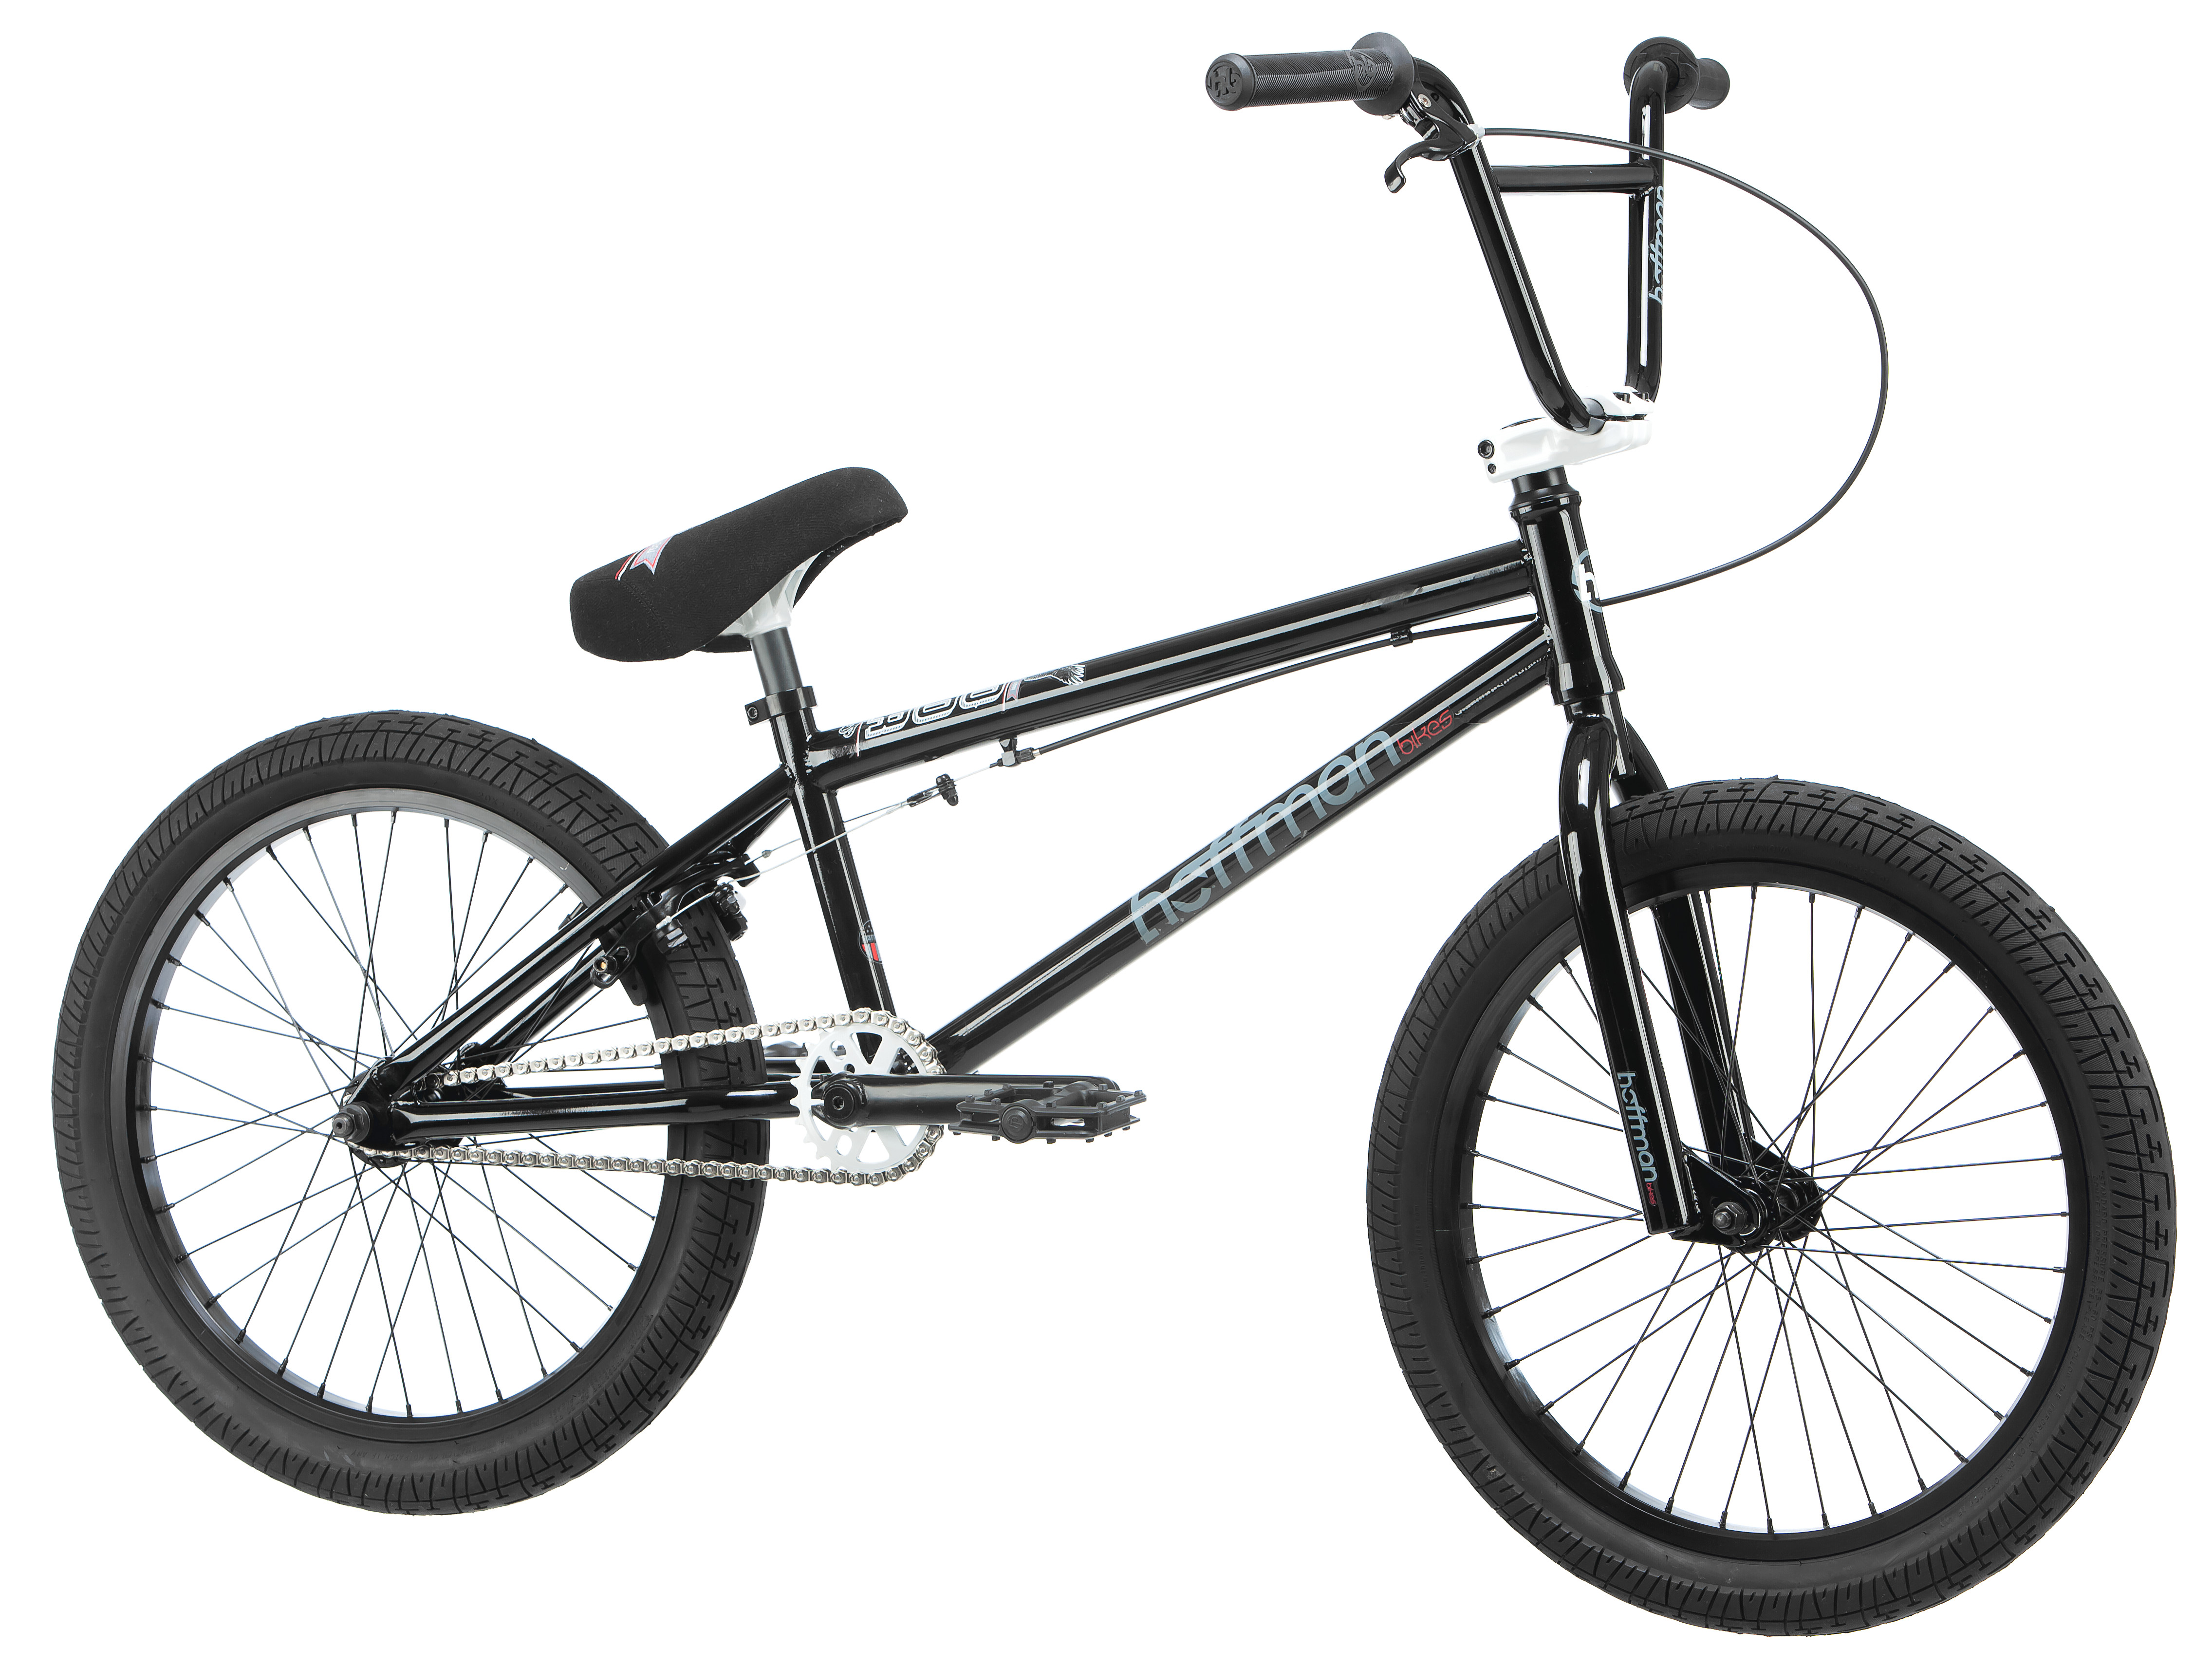 Hoffman Launches New Line Of Bikes At Dicks Made By